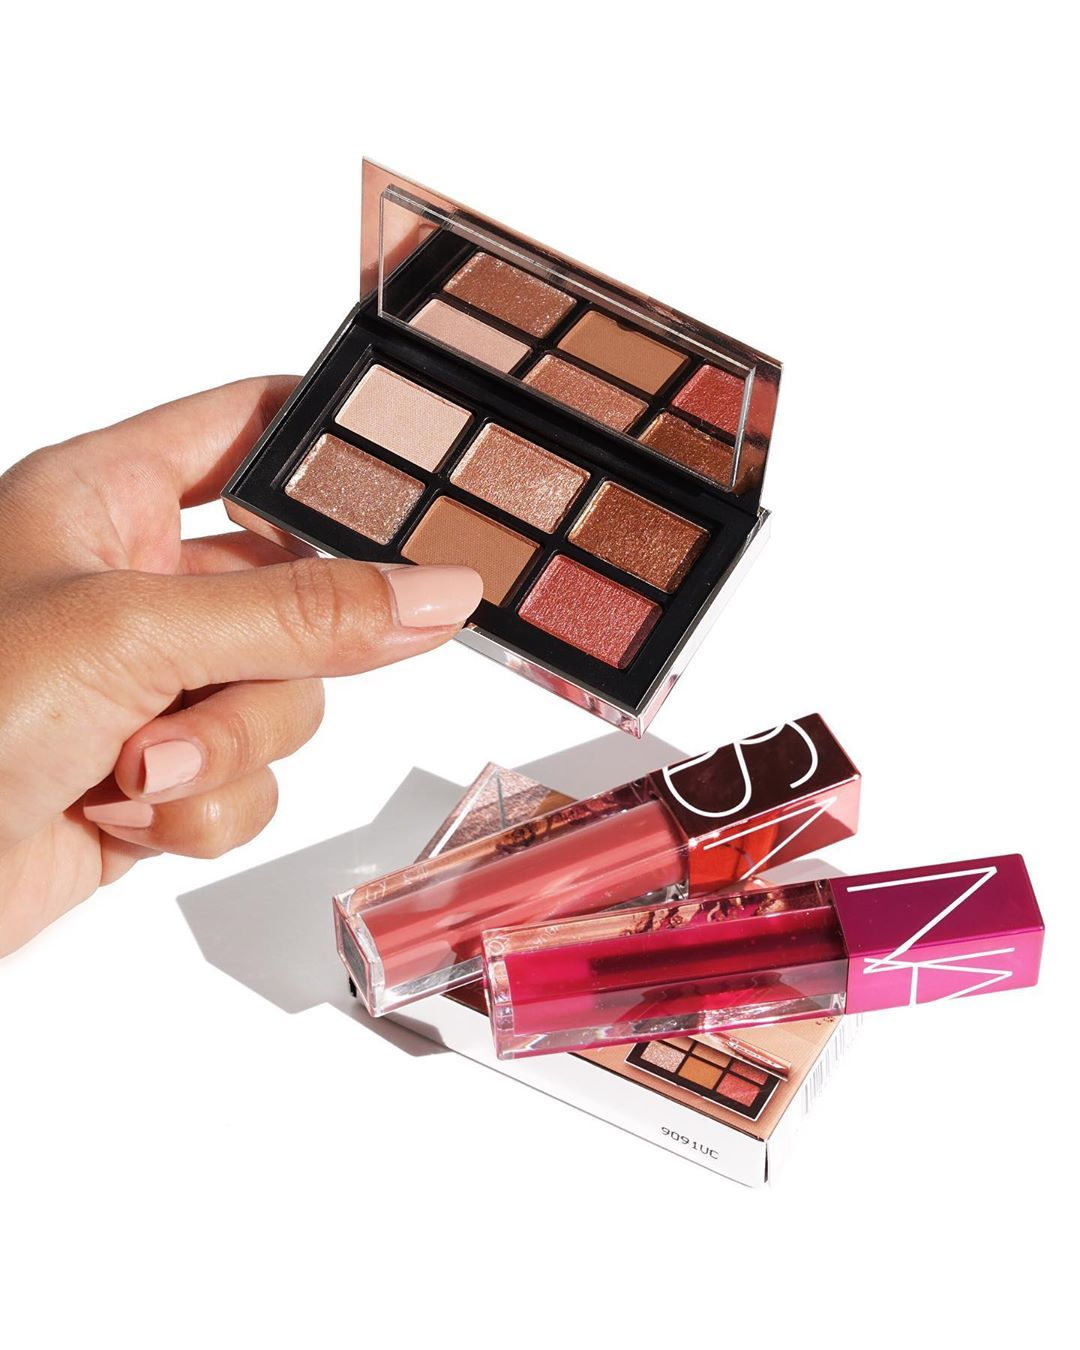 Nars New Wanted Mini Eyeshadow Palette Oil Infused Lip Tints Pic Beautylookbook Eyeshadow Lip Tint Eyeshadow Palette